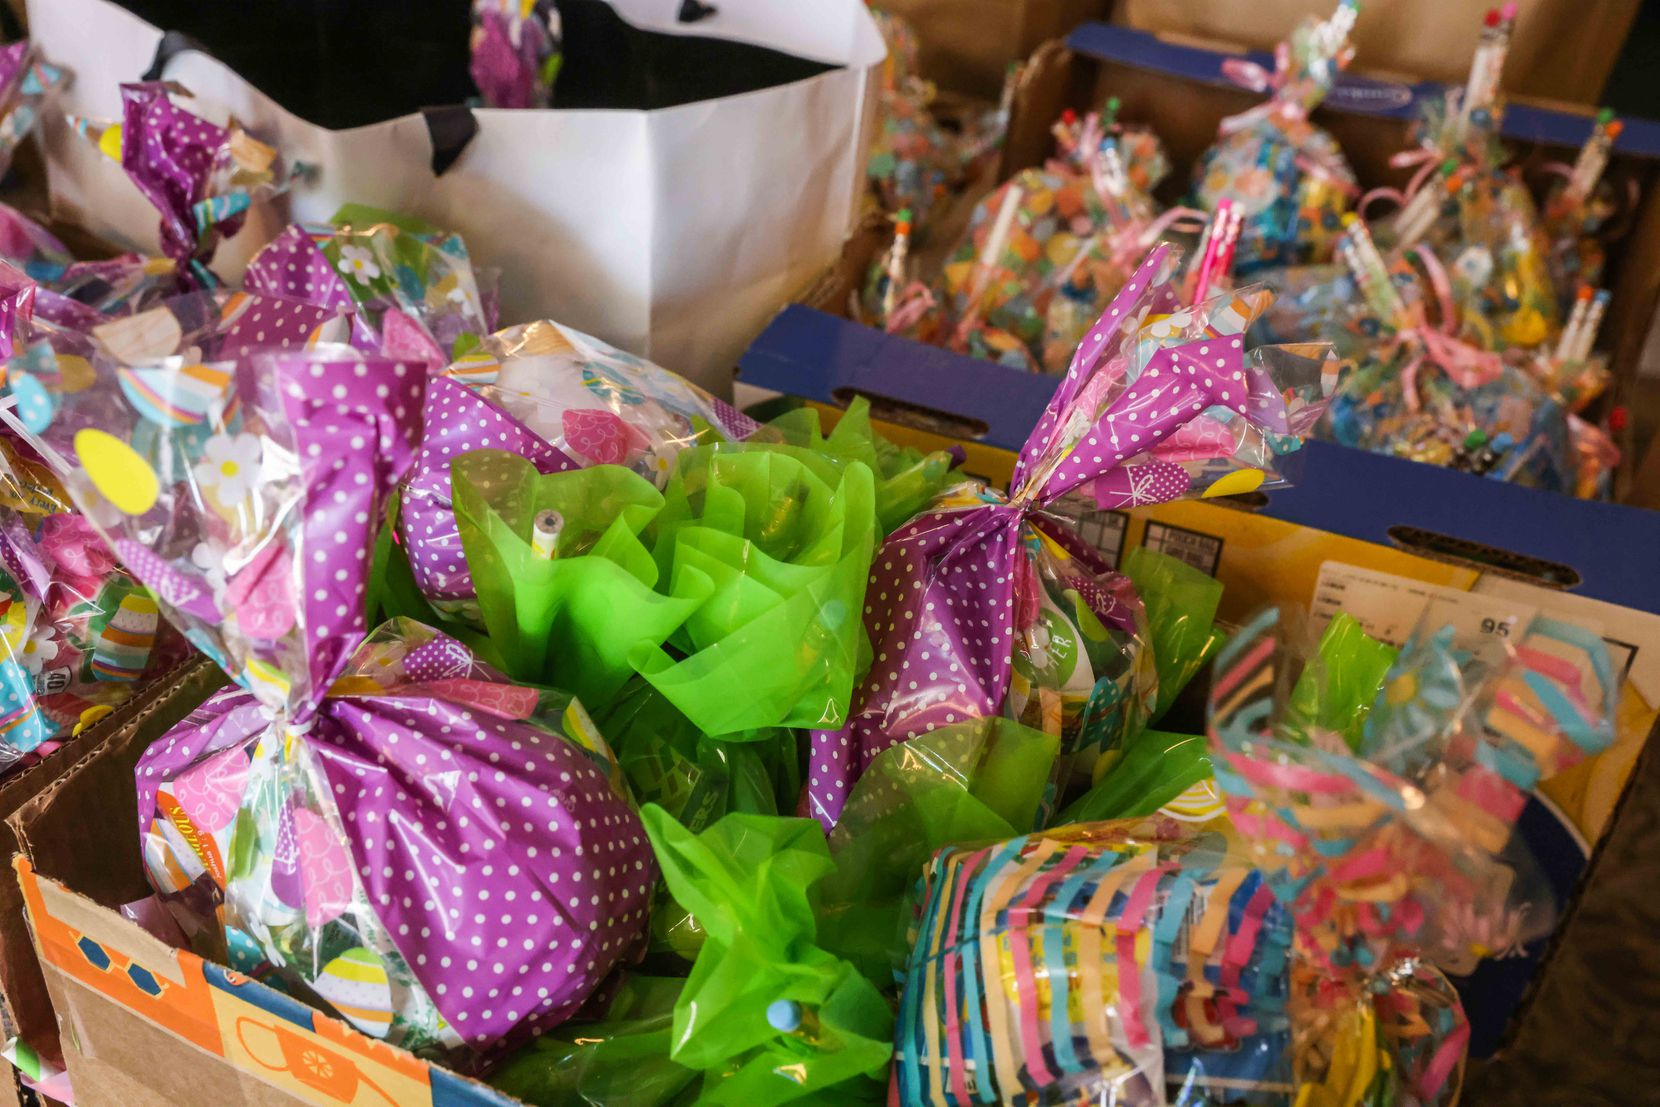 Easter meals for families in need were packaged and ready to go at First United Methodist Church in Coppell on Friday, April 2, 2021.